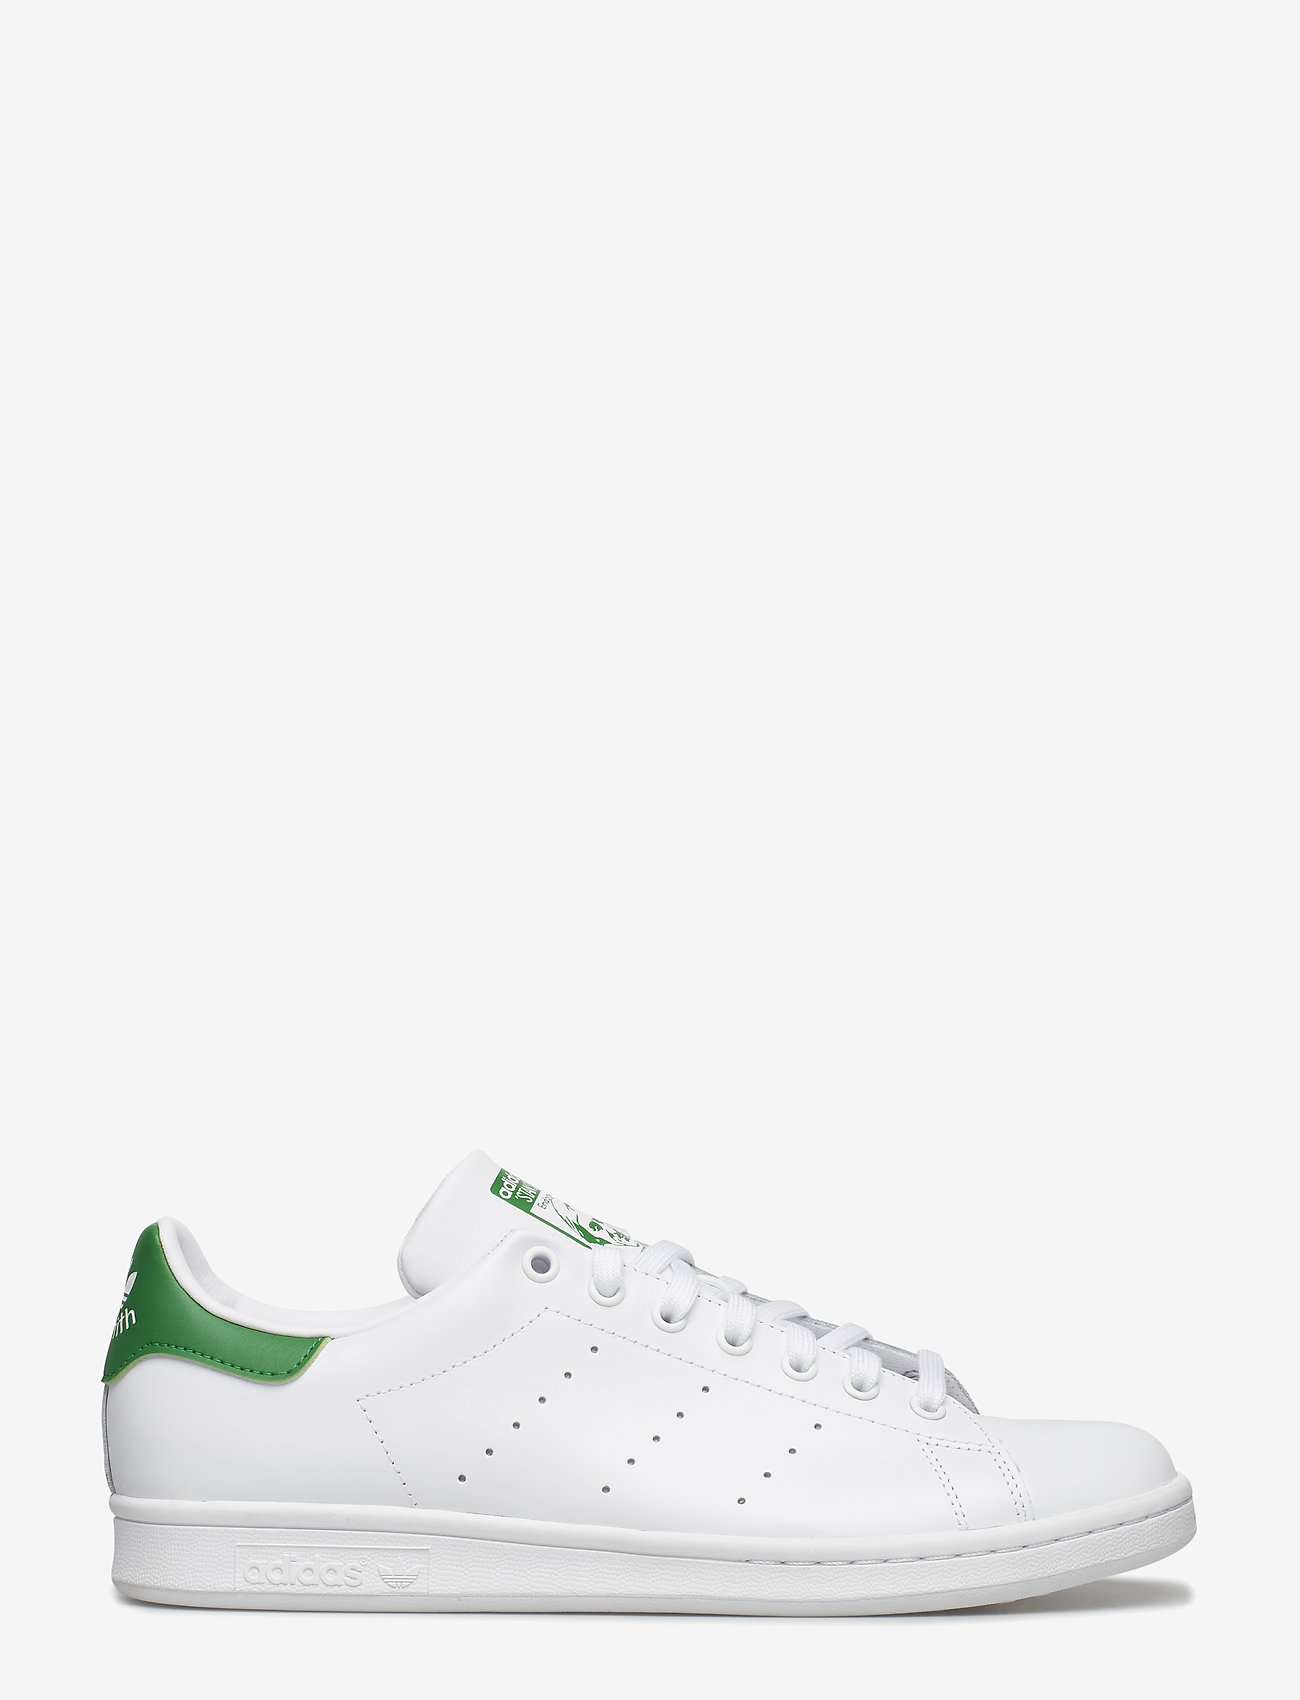 adidas Originals - STAN SMITH - lav ankel - ftwwht/cwhite/green - 1